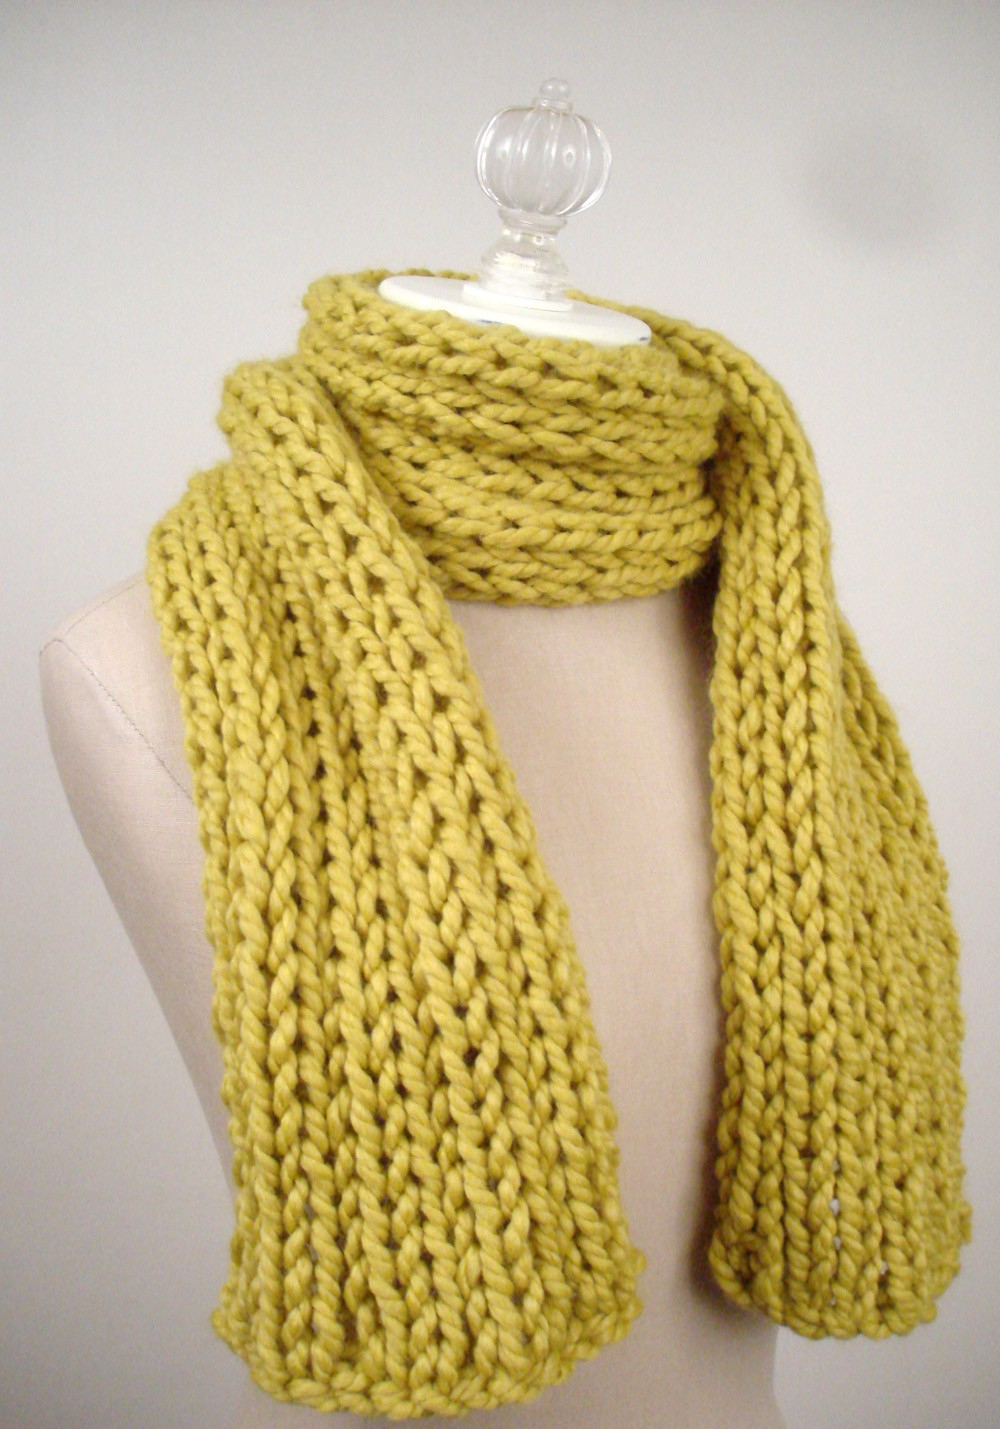 Knitting Scarf Pattern For Beginners Free Christmas Scart Knitting Patterns